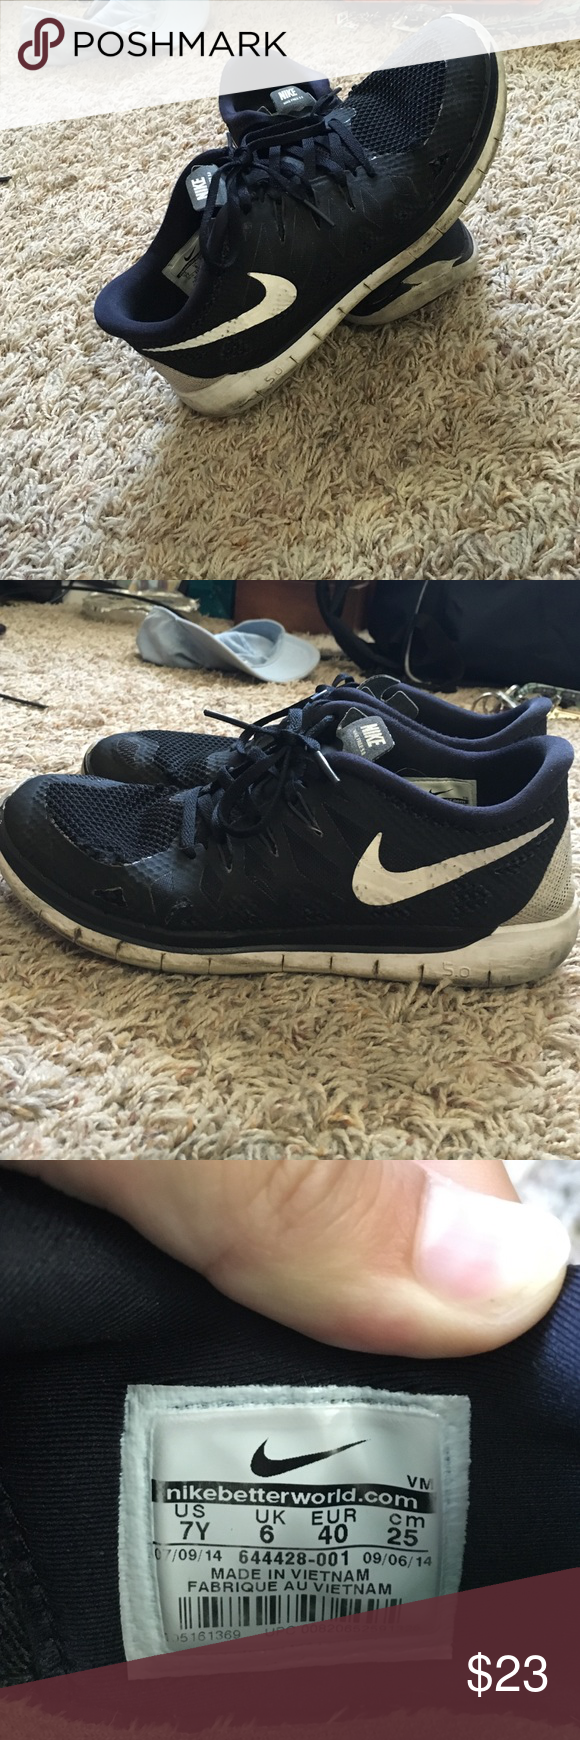 Black nike free runs Black and white, worn a bit but could be washed and would look very new. Got them in a kids size 7 which is equivalent to a women's 8.5 Nike Shoes Athletic Shoes